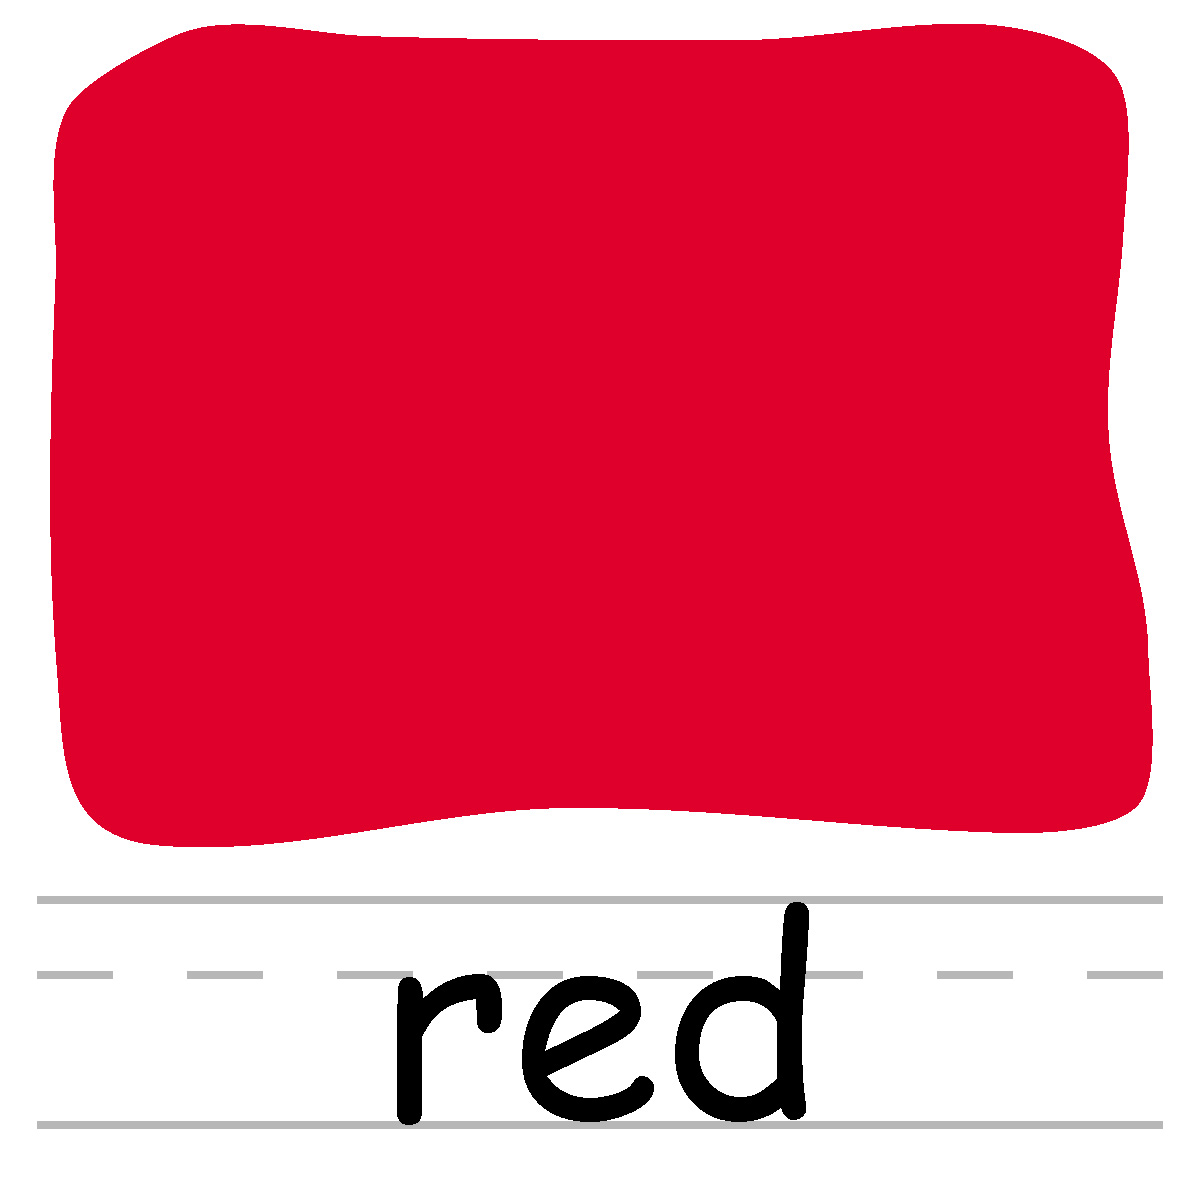 Red Crayon Clip Art | Clipart Panda - Free Clipart Images